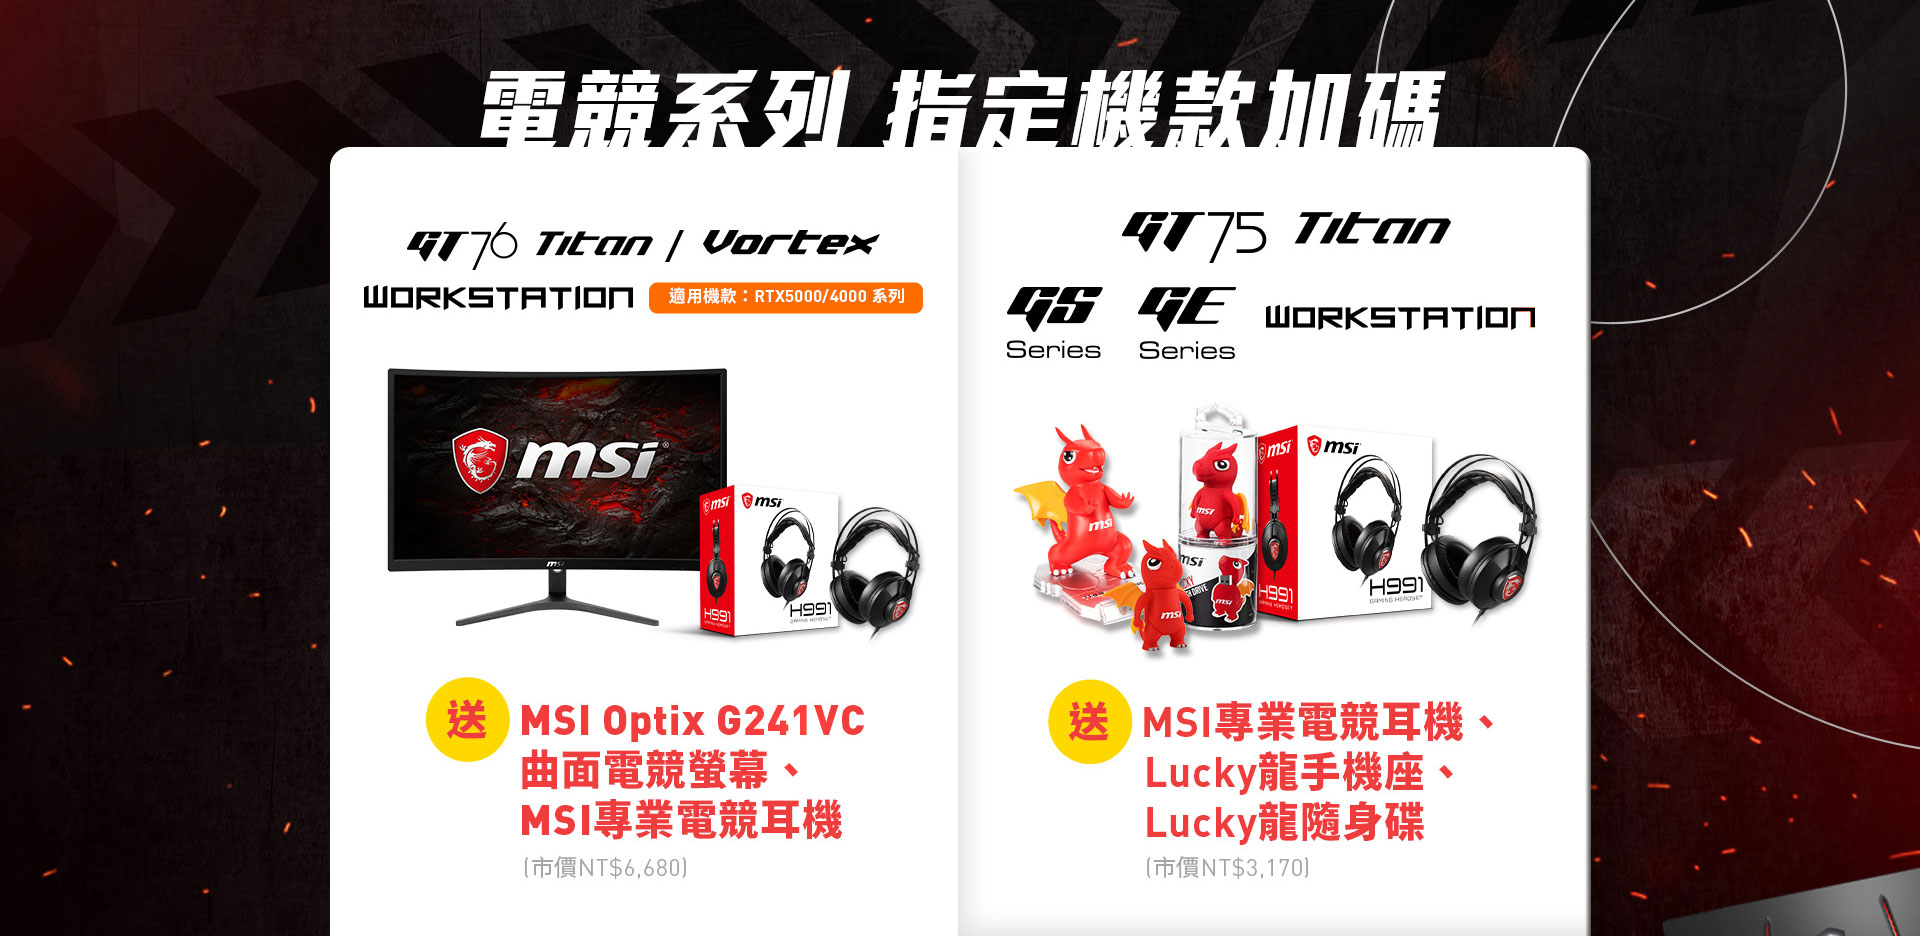 gift msi products